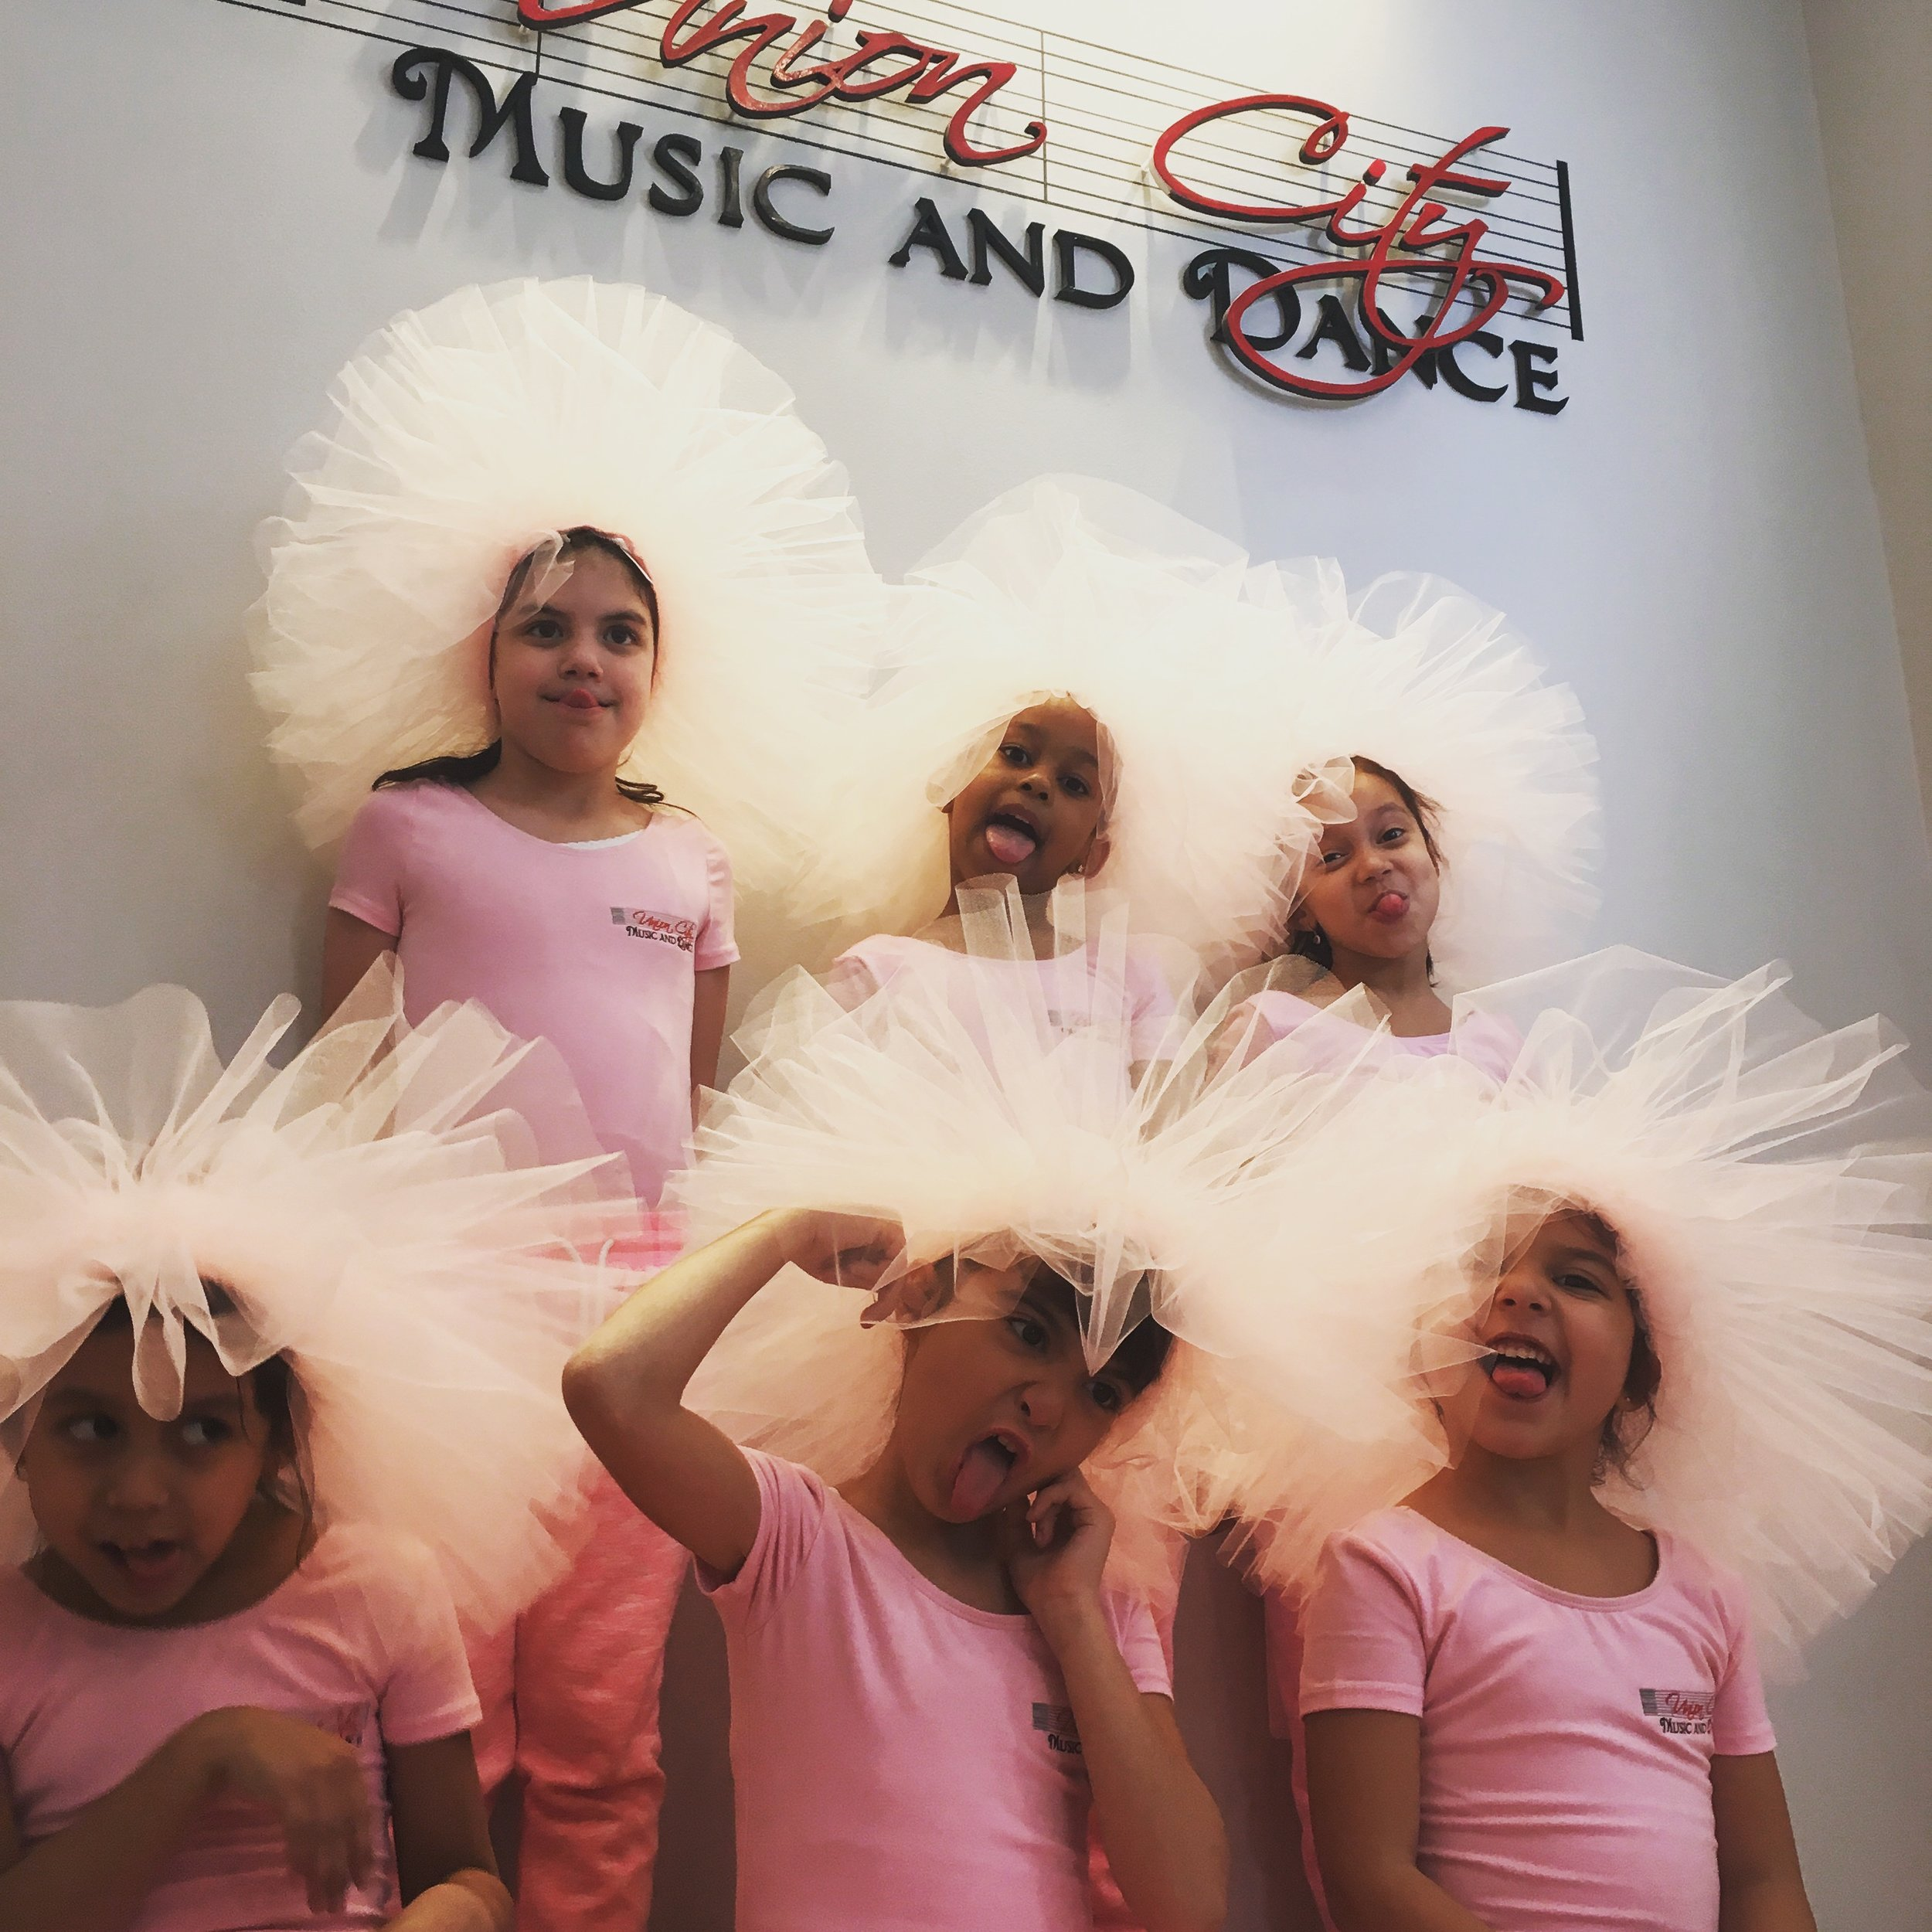 Tutu Tots ages 2-5yrs - Our tutu-tots program is an intro to dance designed to support the exploration of dance in young students. This course covers beginnings of ballet, creative movement, gymnastics and flexibility.